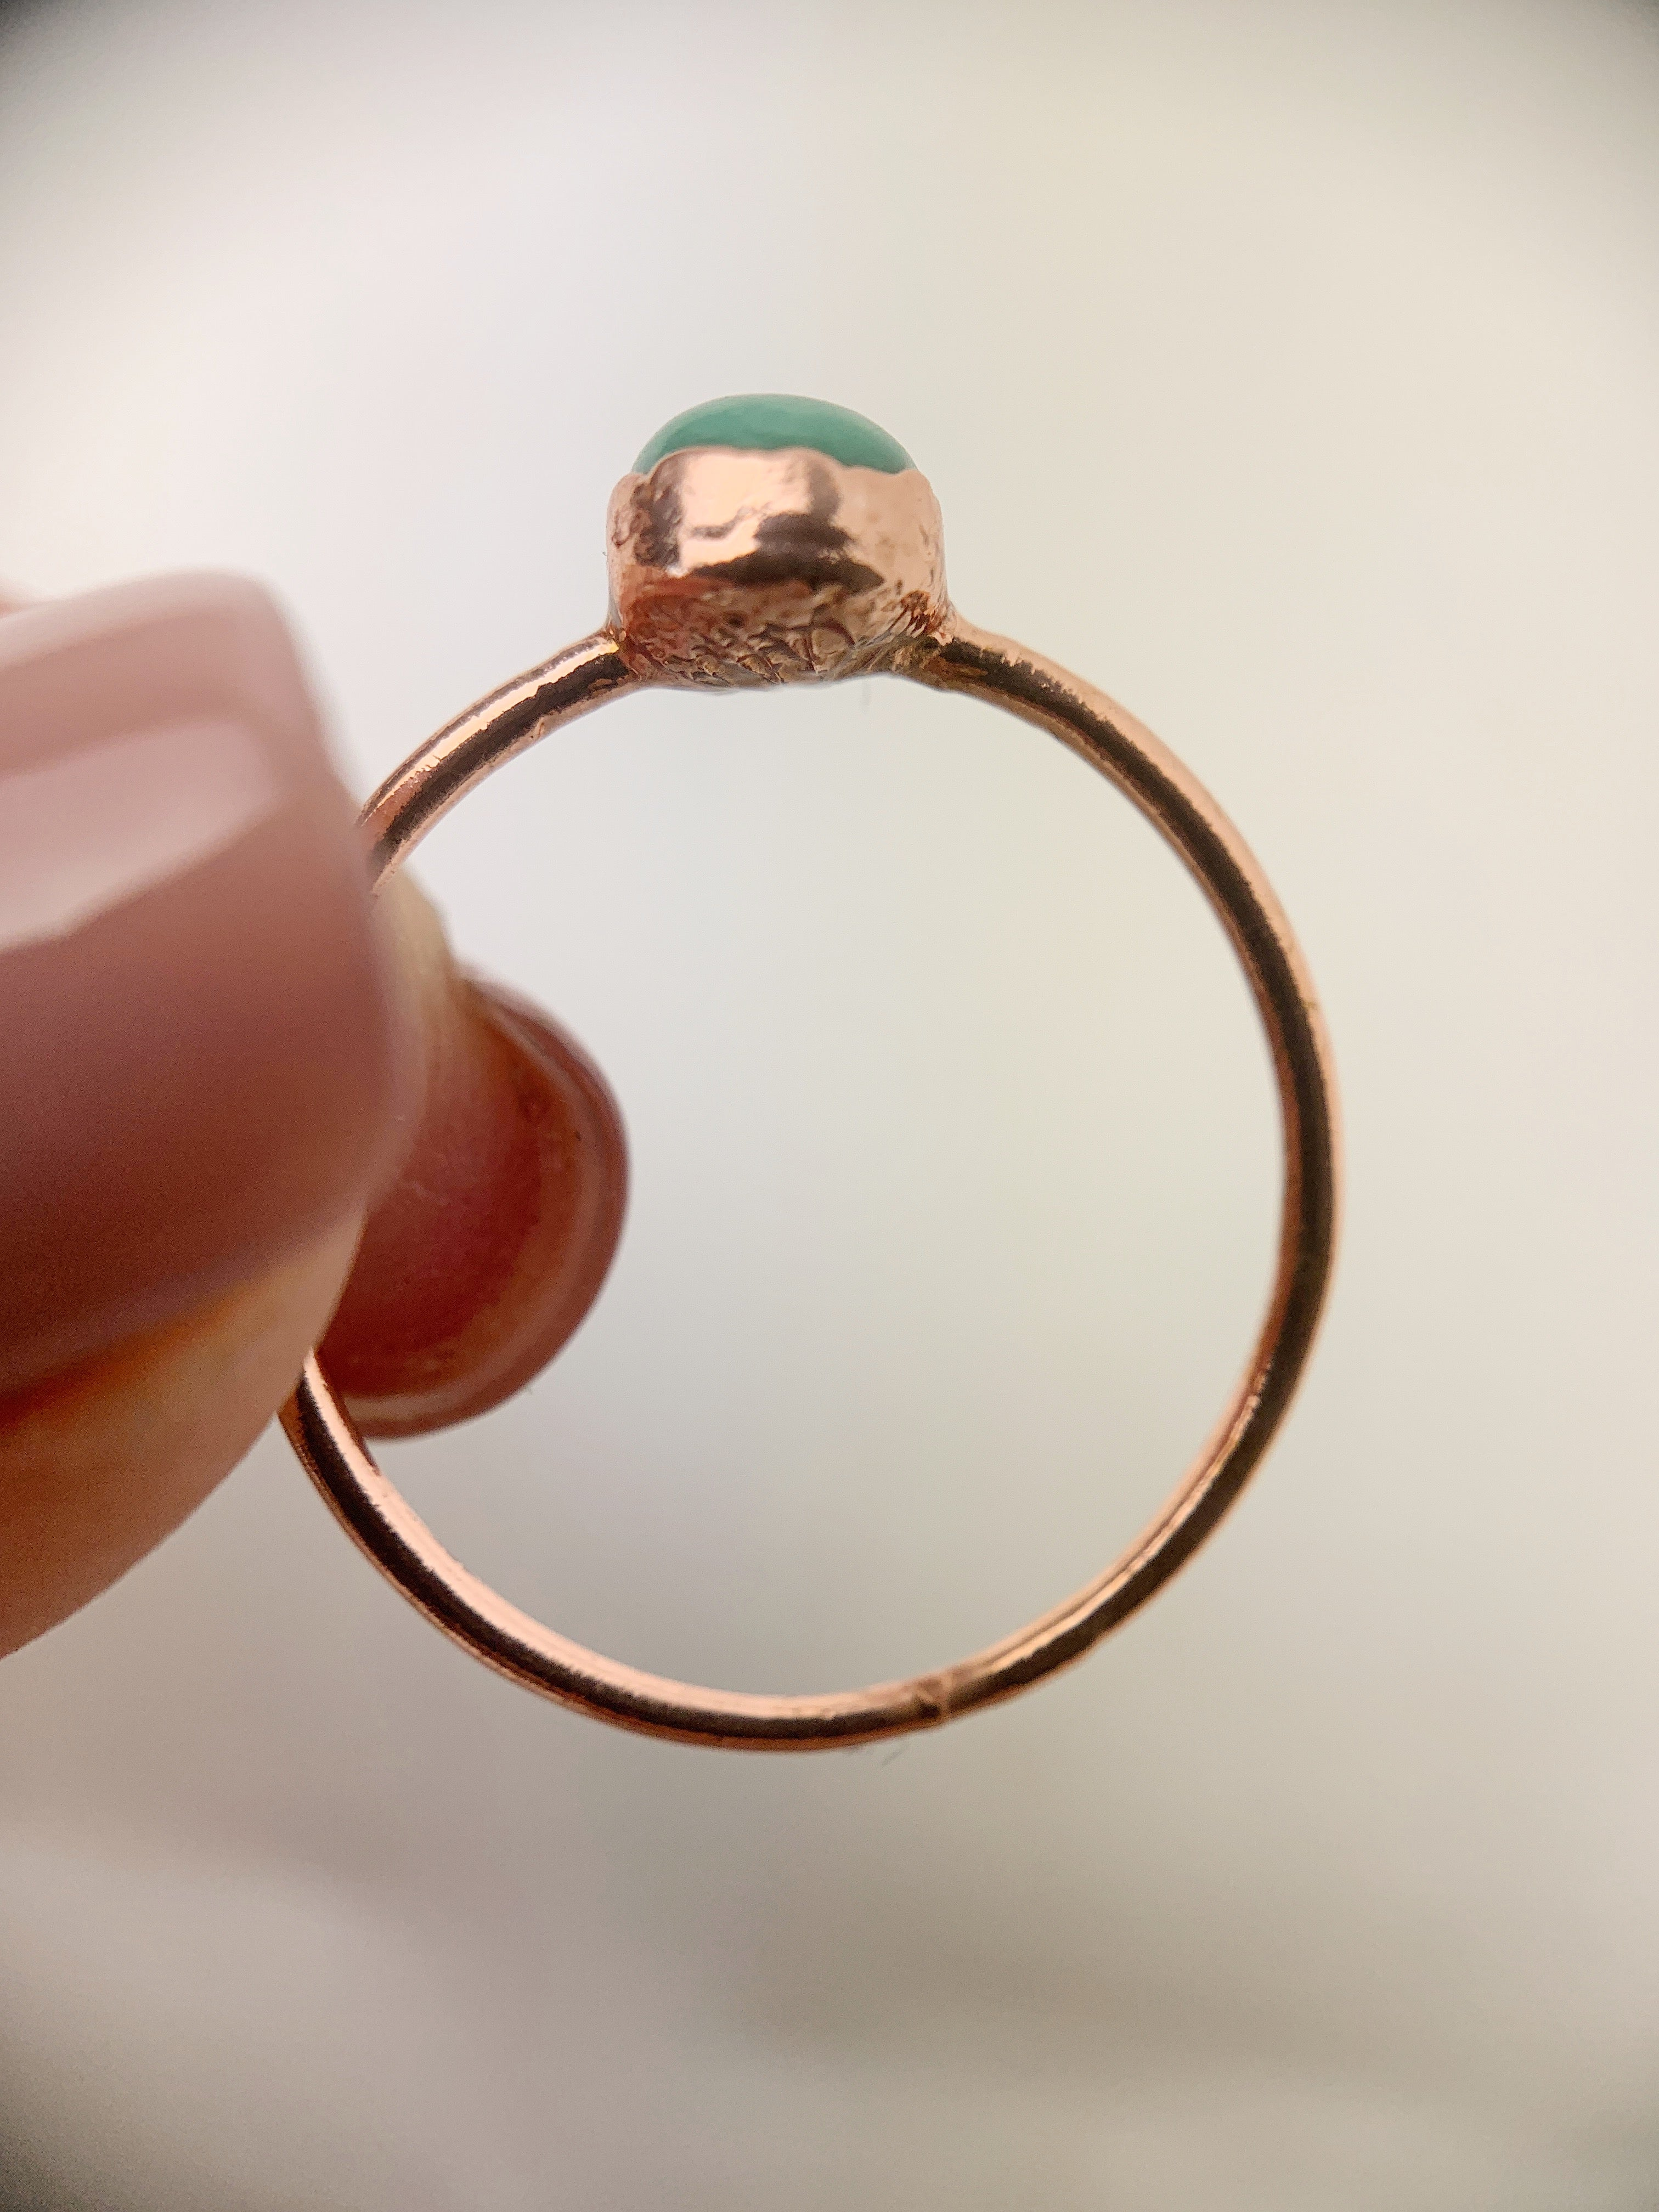 Turquoise Ring - size M 1/2